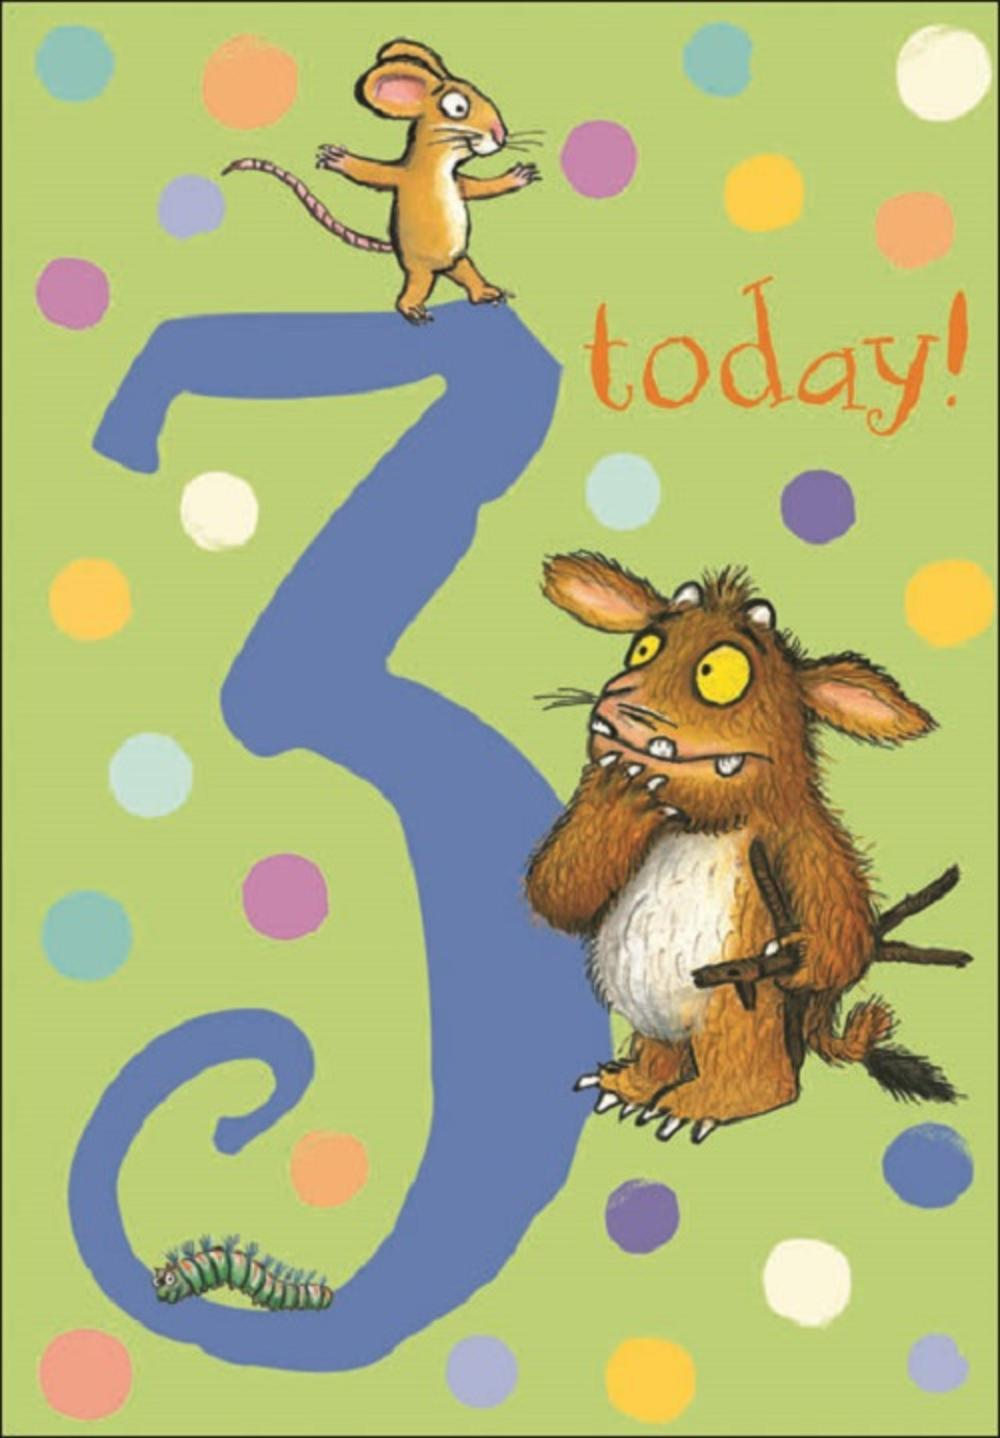 Gruffalo 3 Today 3rd Birthday Greeting Card